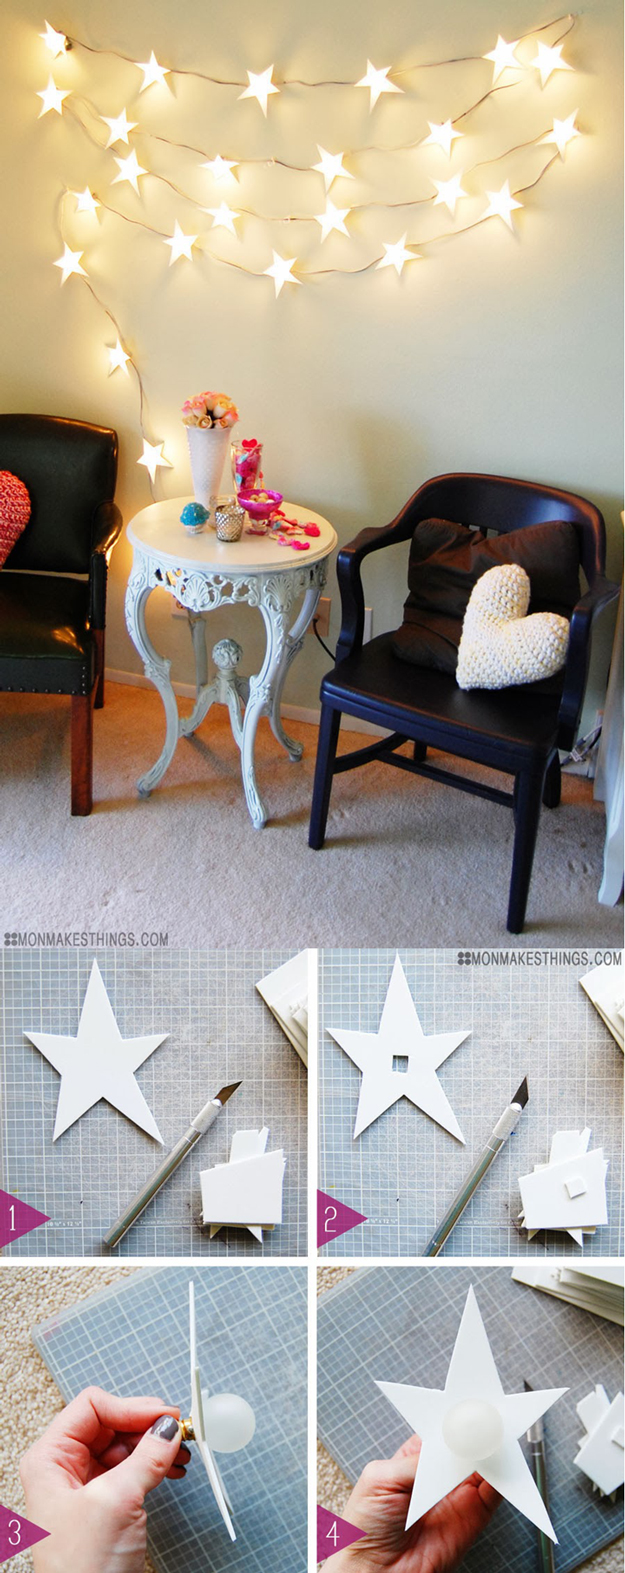 string light diy ideas for cool home decor star garland christmas light diy are fun - Christmas Lights Bedroom Decor